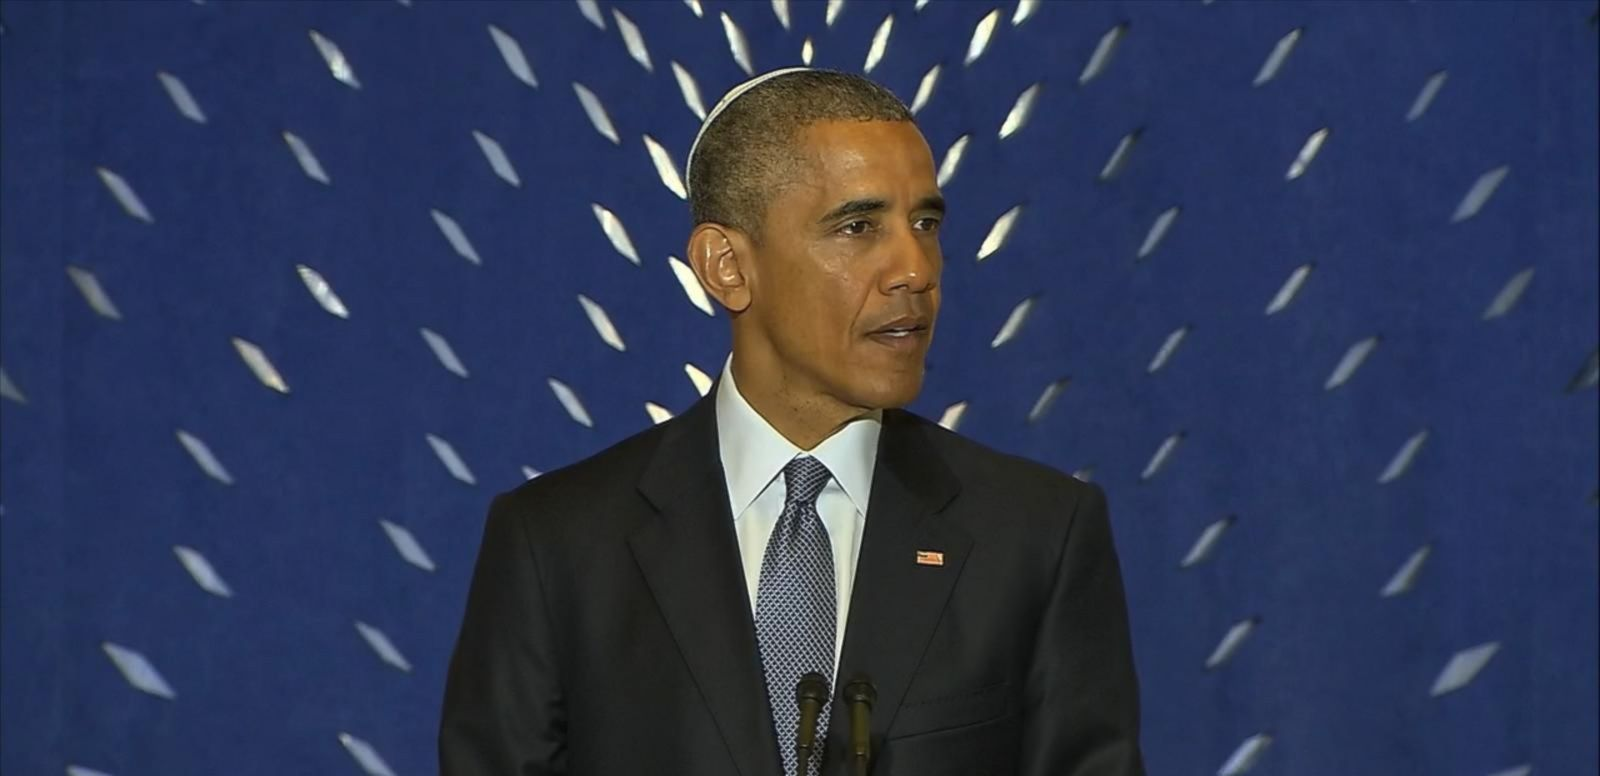 VIDEO: President Obama addressed the Jewish-American community inside Adas Israel in Washington, D.C. and spoke about the tentative nuclear deal with Iran.